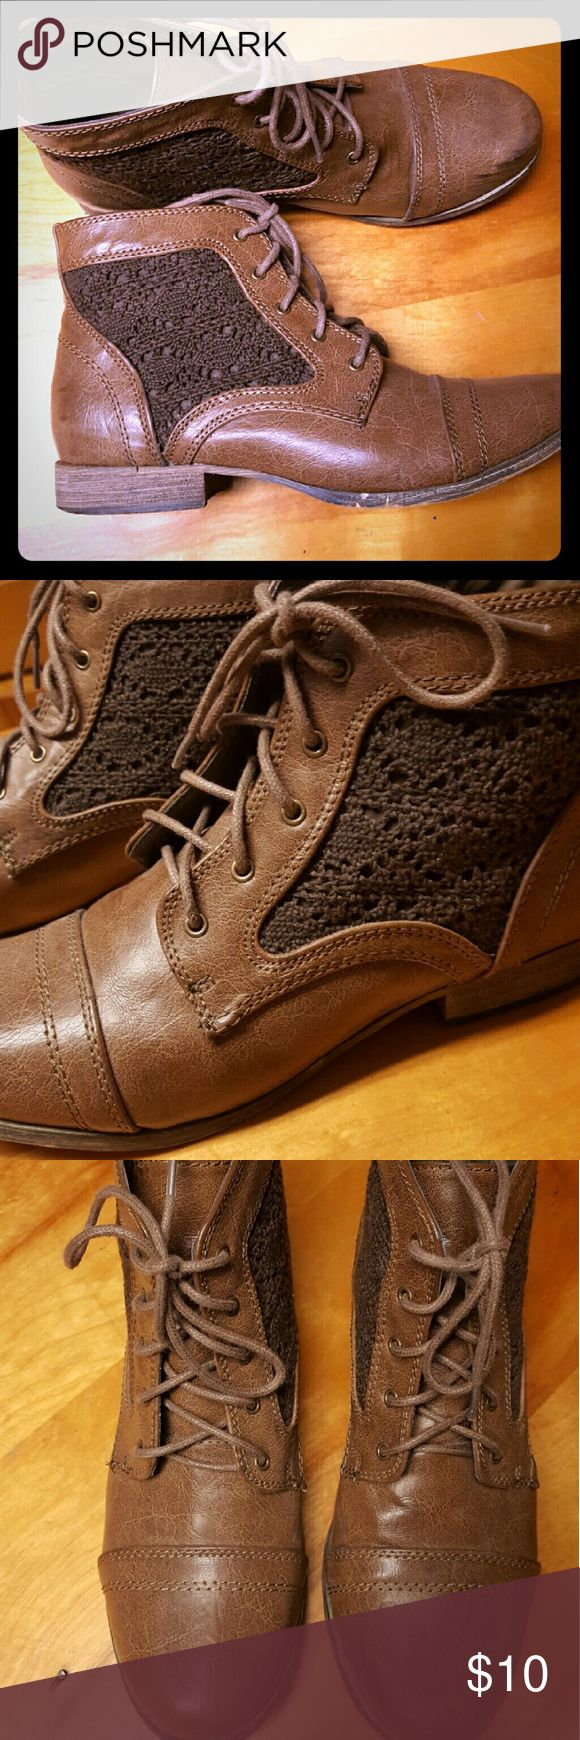 Lace Up Boots *Cute lace up style boots  *crochet inlay *Only worn a few times Francesca's Collections Shoes Lace Up Boots